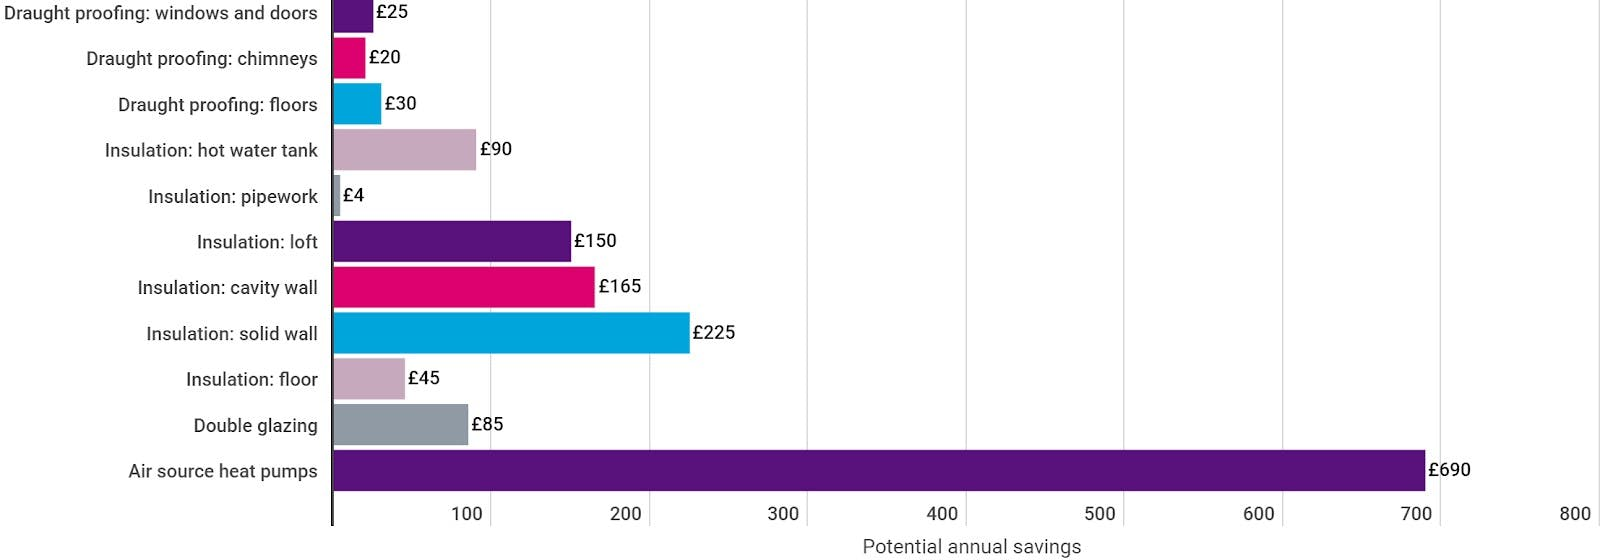 Potential annual savings from different types of home insulation.